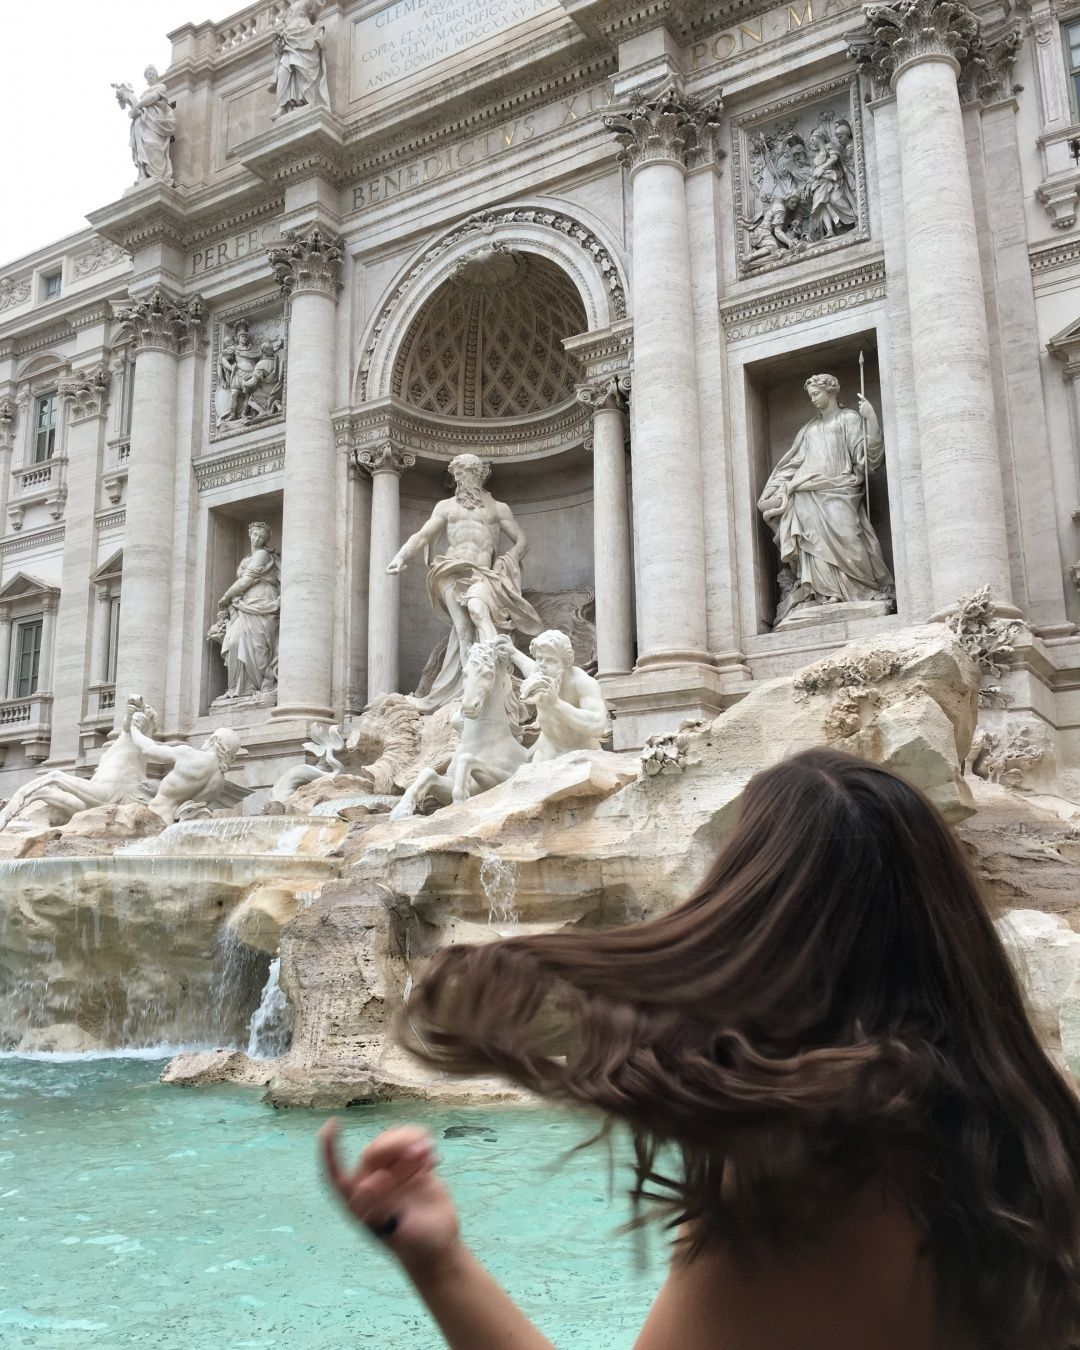 Amore per sempre #rome #italy #trevifountain #citytrip #city #travel #europe #fashion #style #look #mode #outfit #ootd #streetstyle #fashionblogger #blogger #travelblogger #influencer #citylife #globetrotter #architecture #art #design